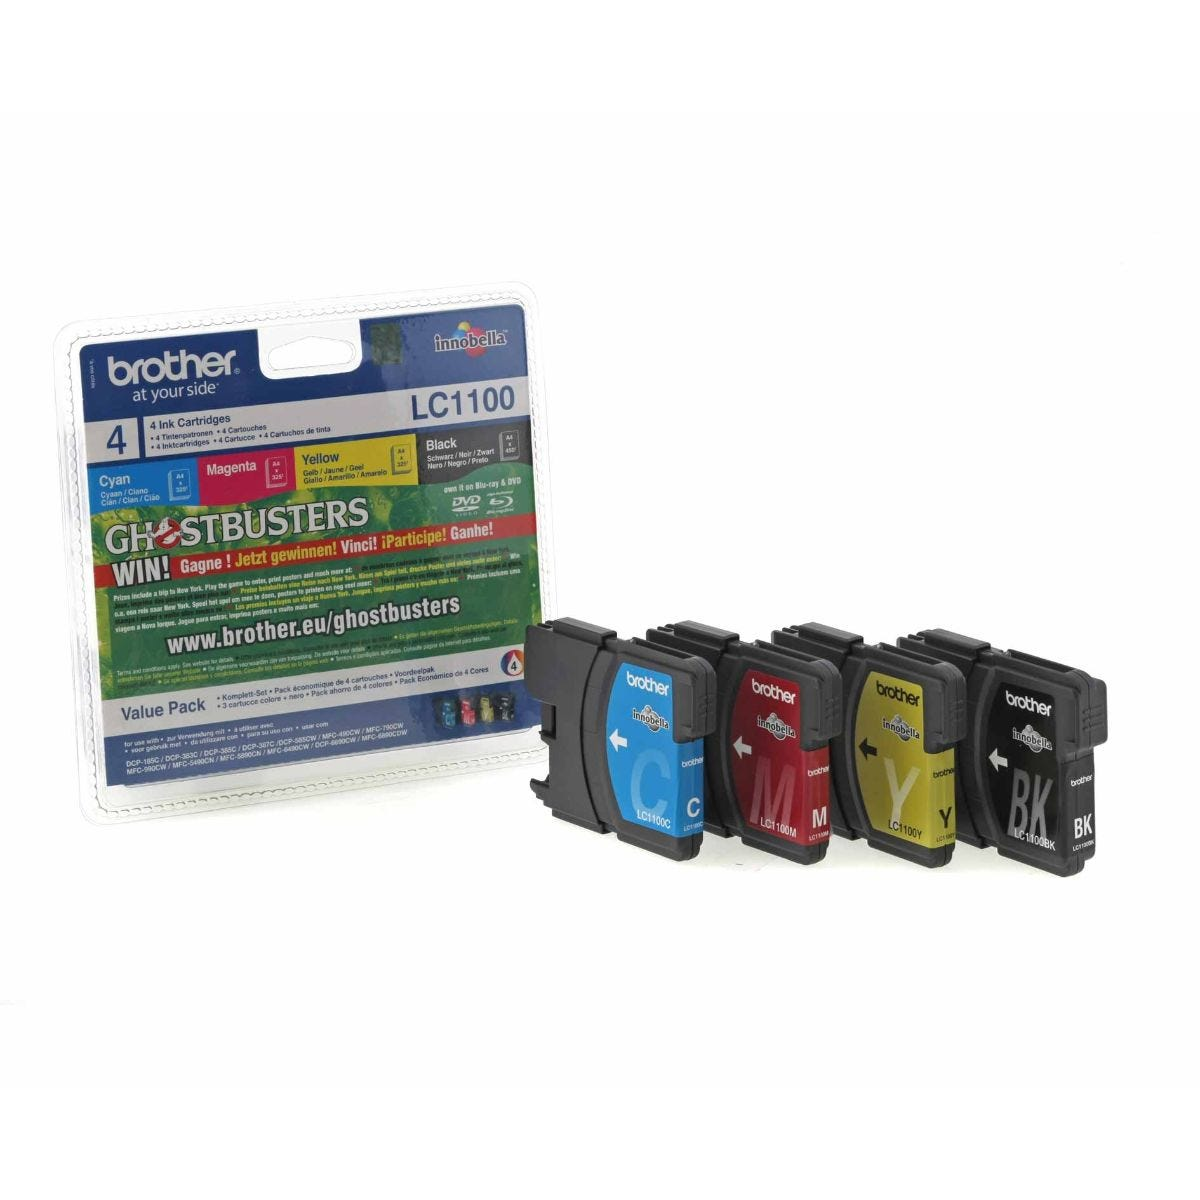 Image of Brother LC1100 Inkjet Cartridge Value Pack of 4, Assorted